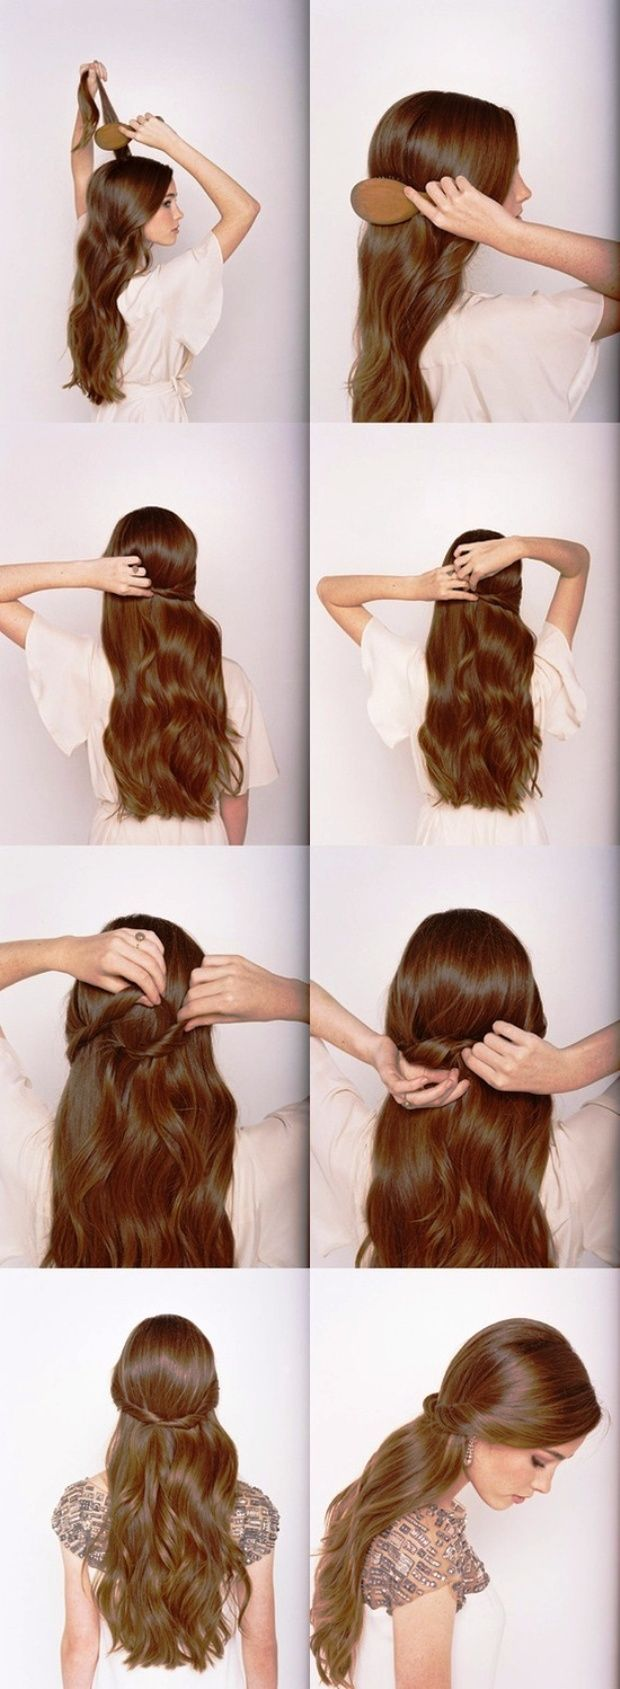 cute hairstyles you can do in under minutes part ii hairs